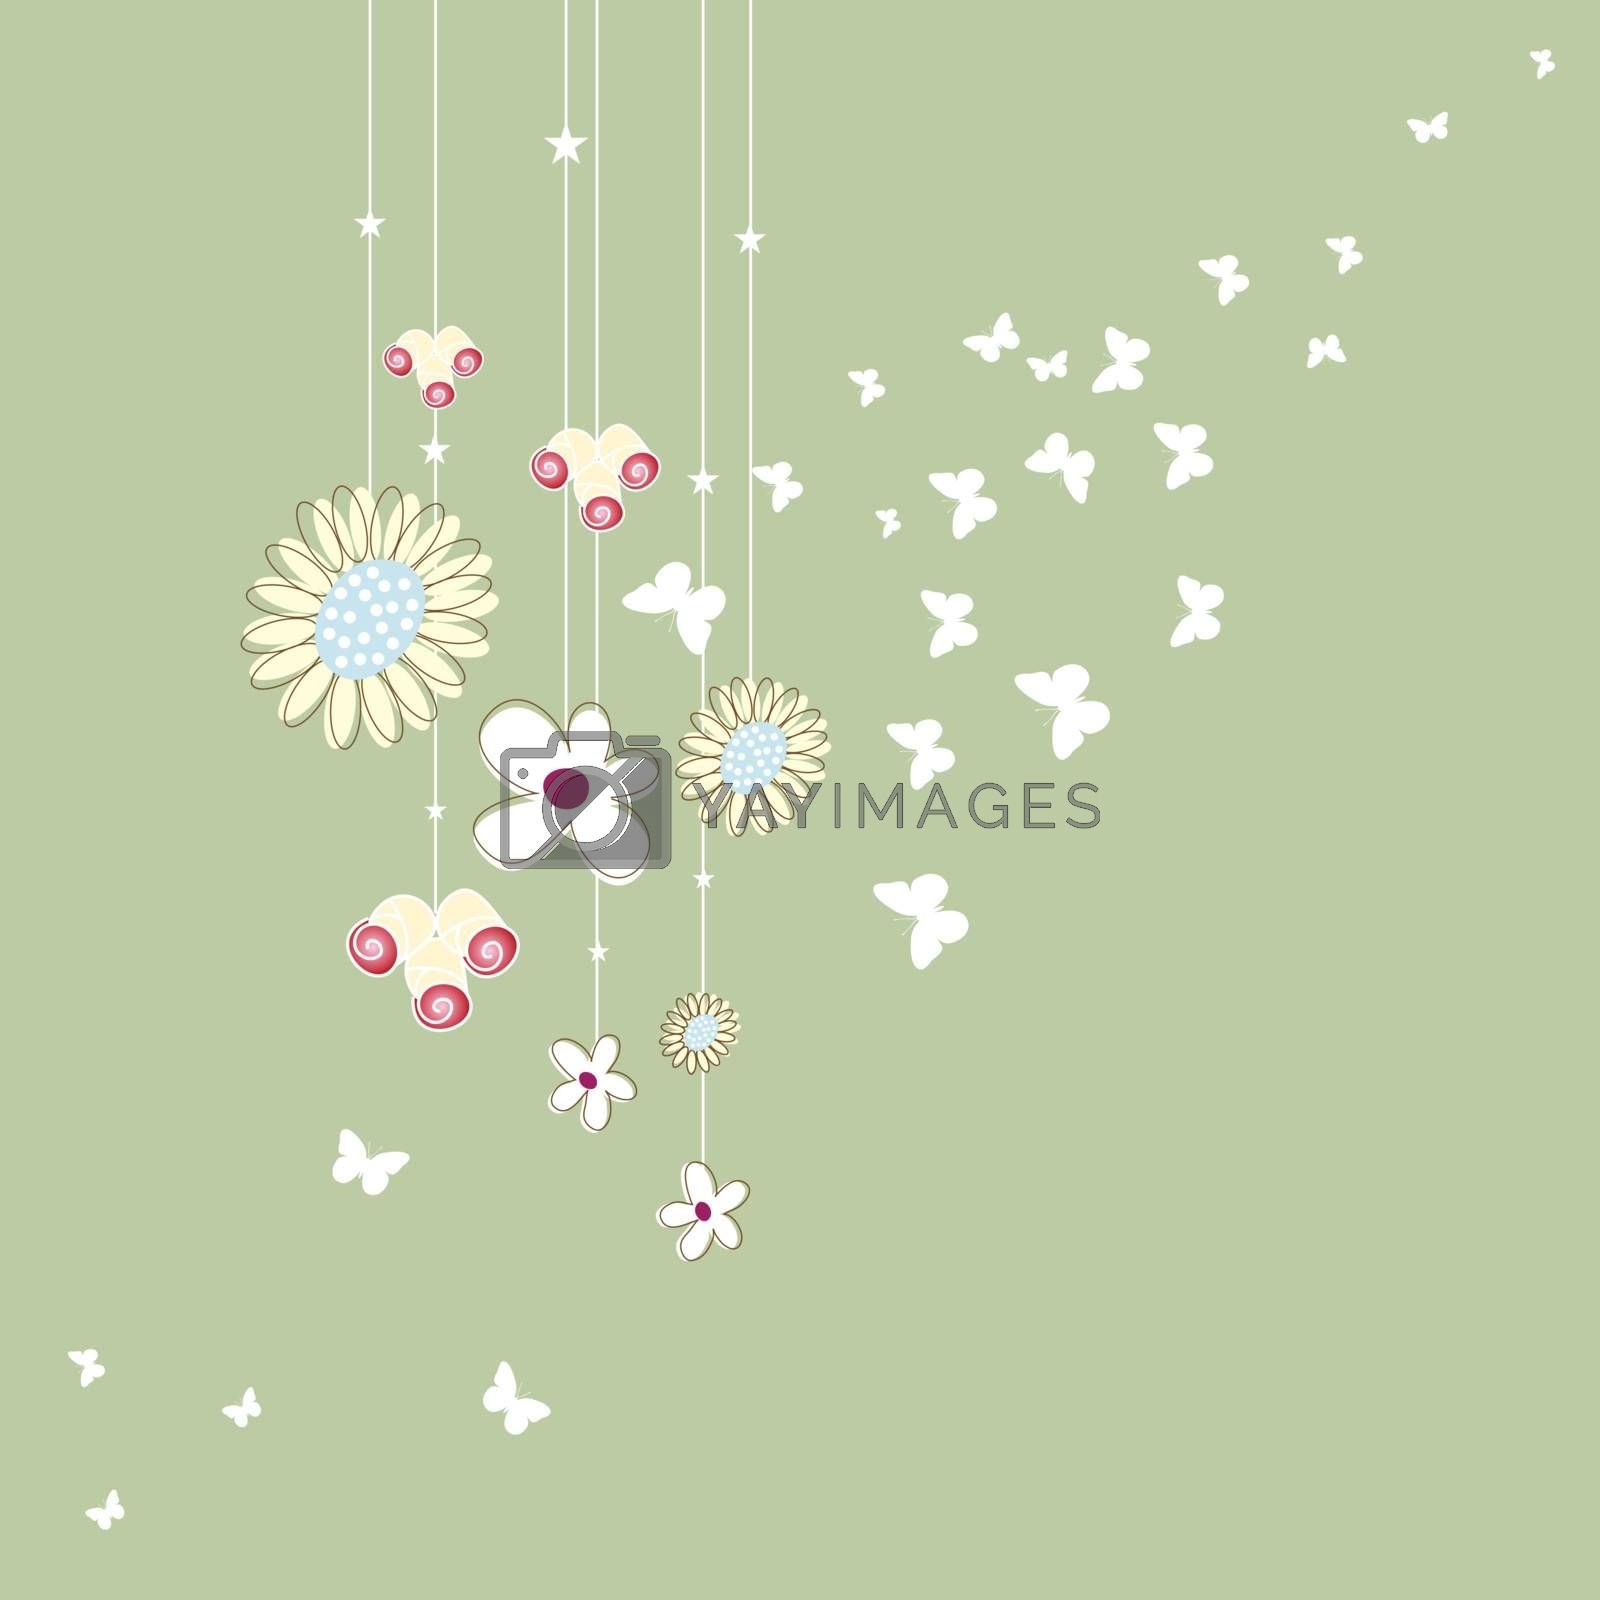 Royalty free image of Graphics, grass, flowers and butterflies hanging by nirots